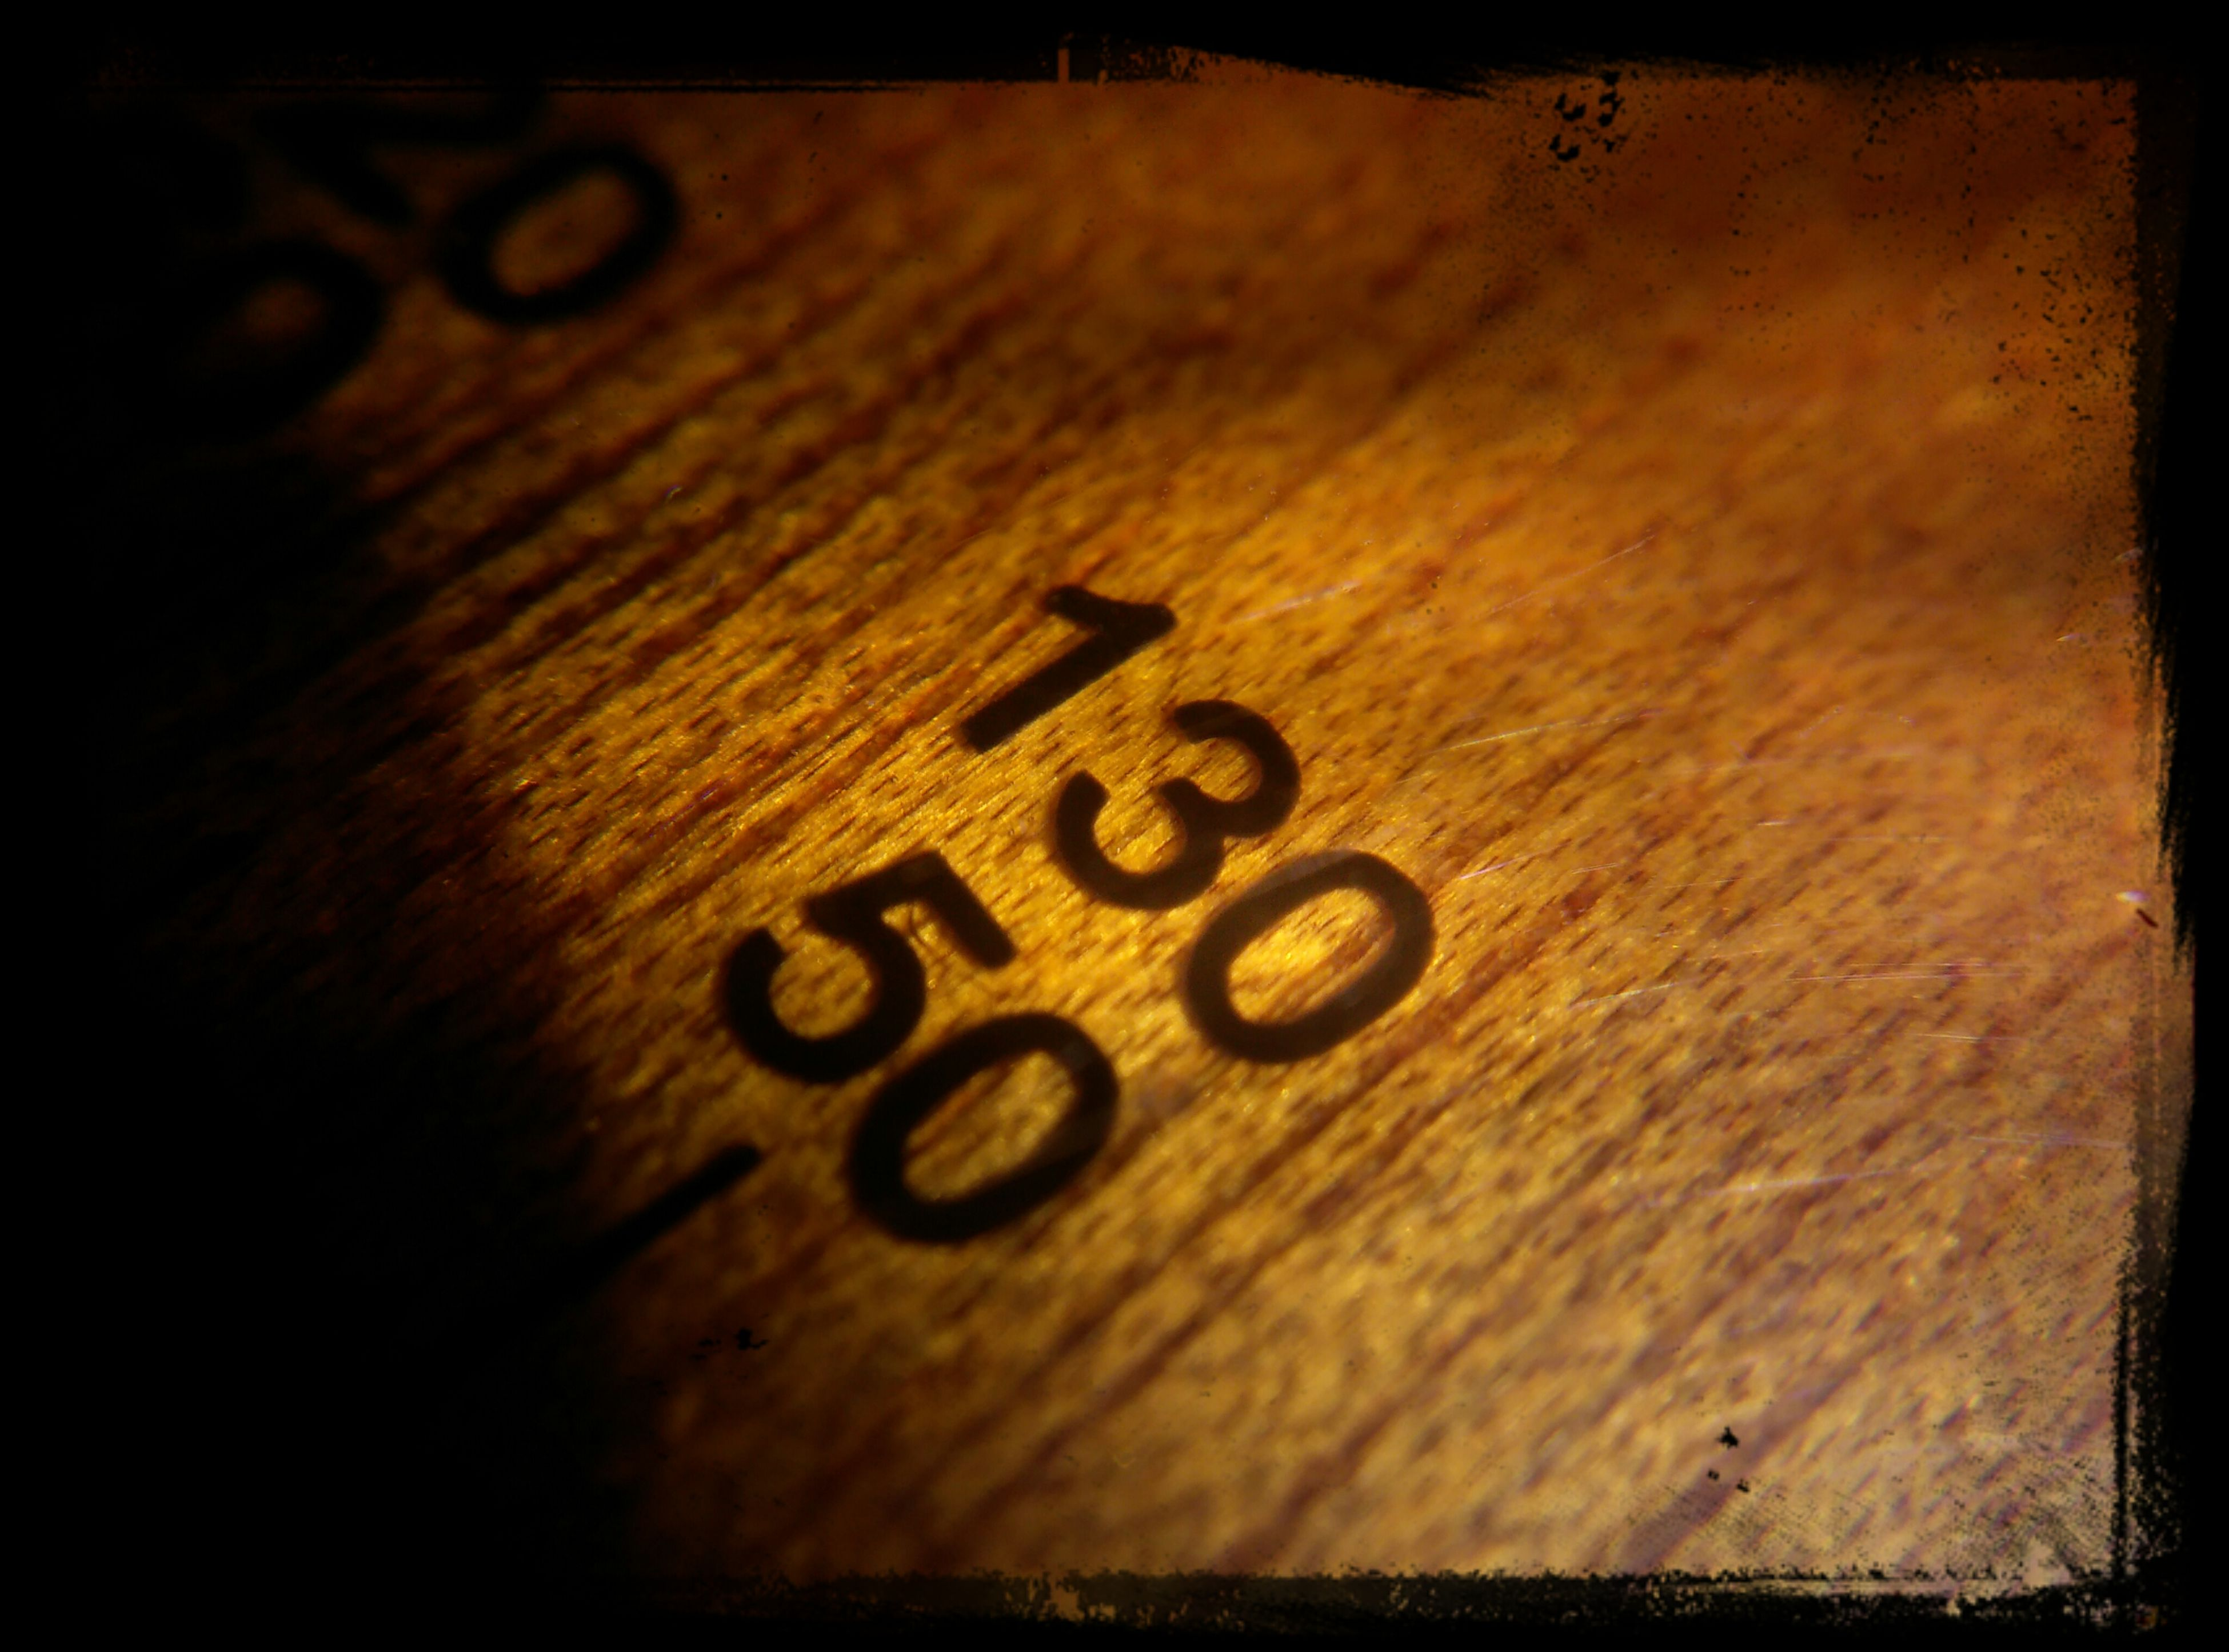 indoors, table, wood - material, still life, close-up, high angle view, wooden, text, selective focus, shadow, auto post production filter, no people, communication, wood, single object, western script, number, transfer print, textured, wall - building feature